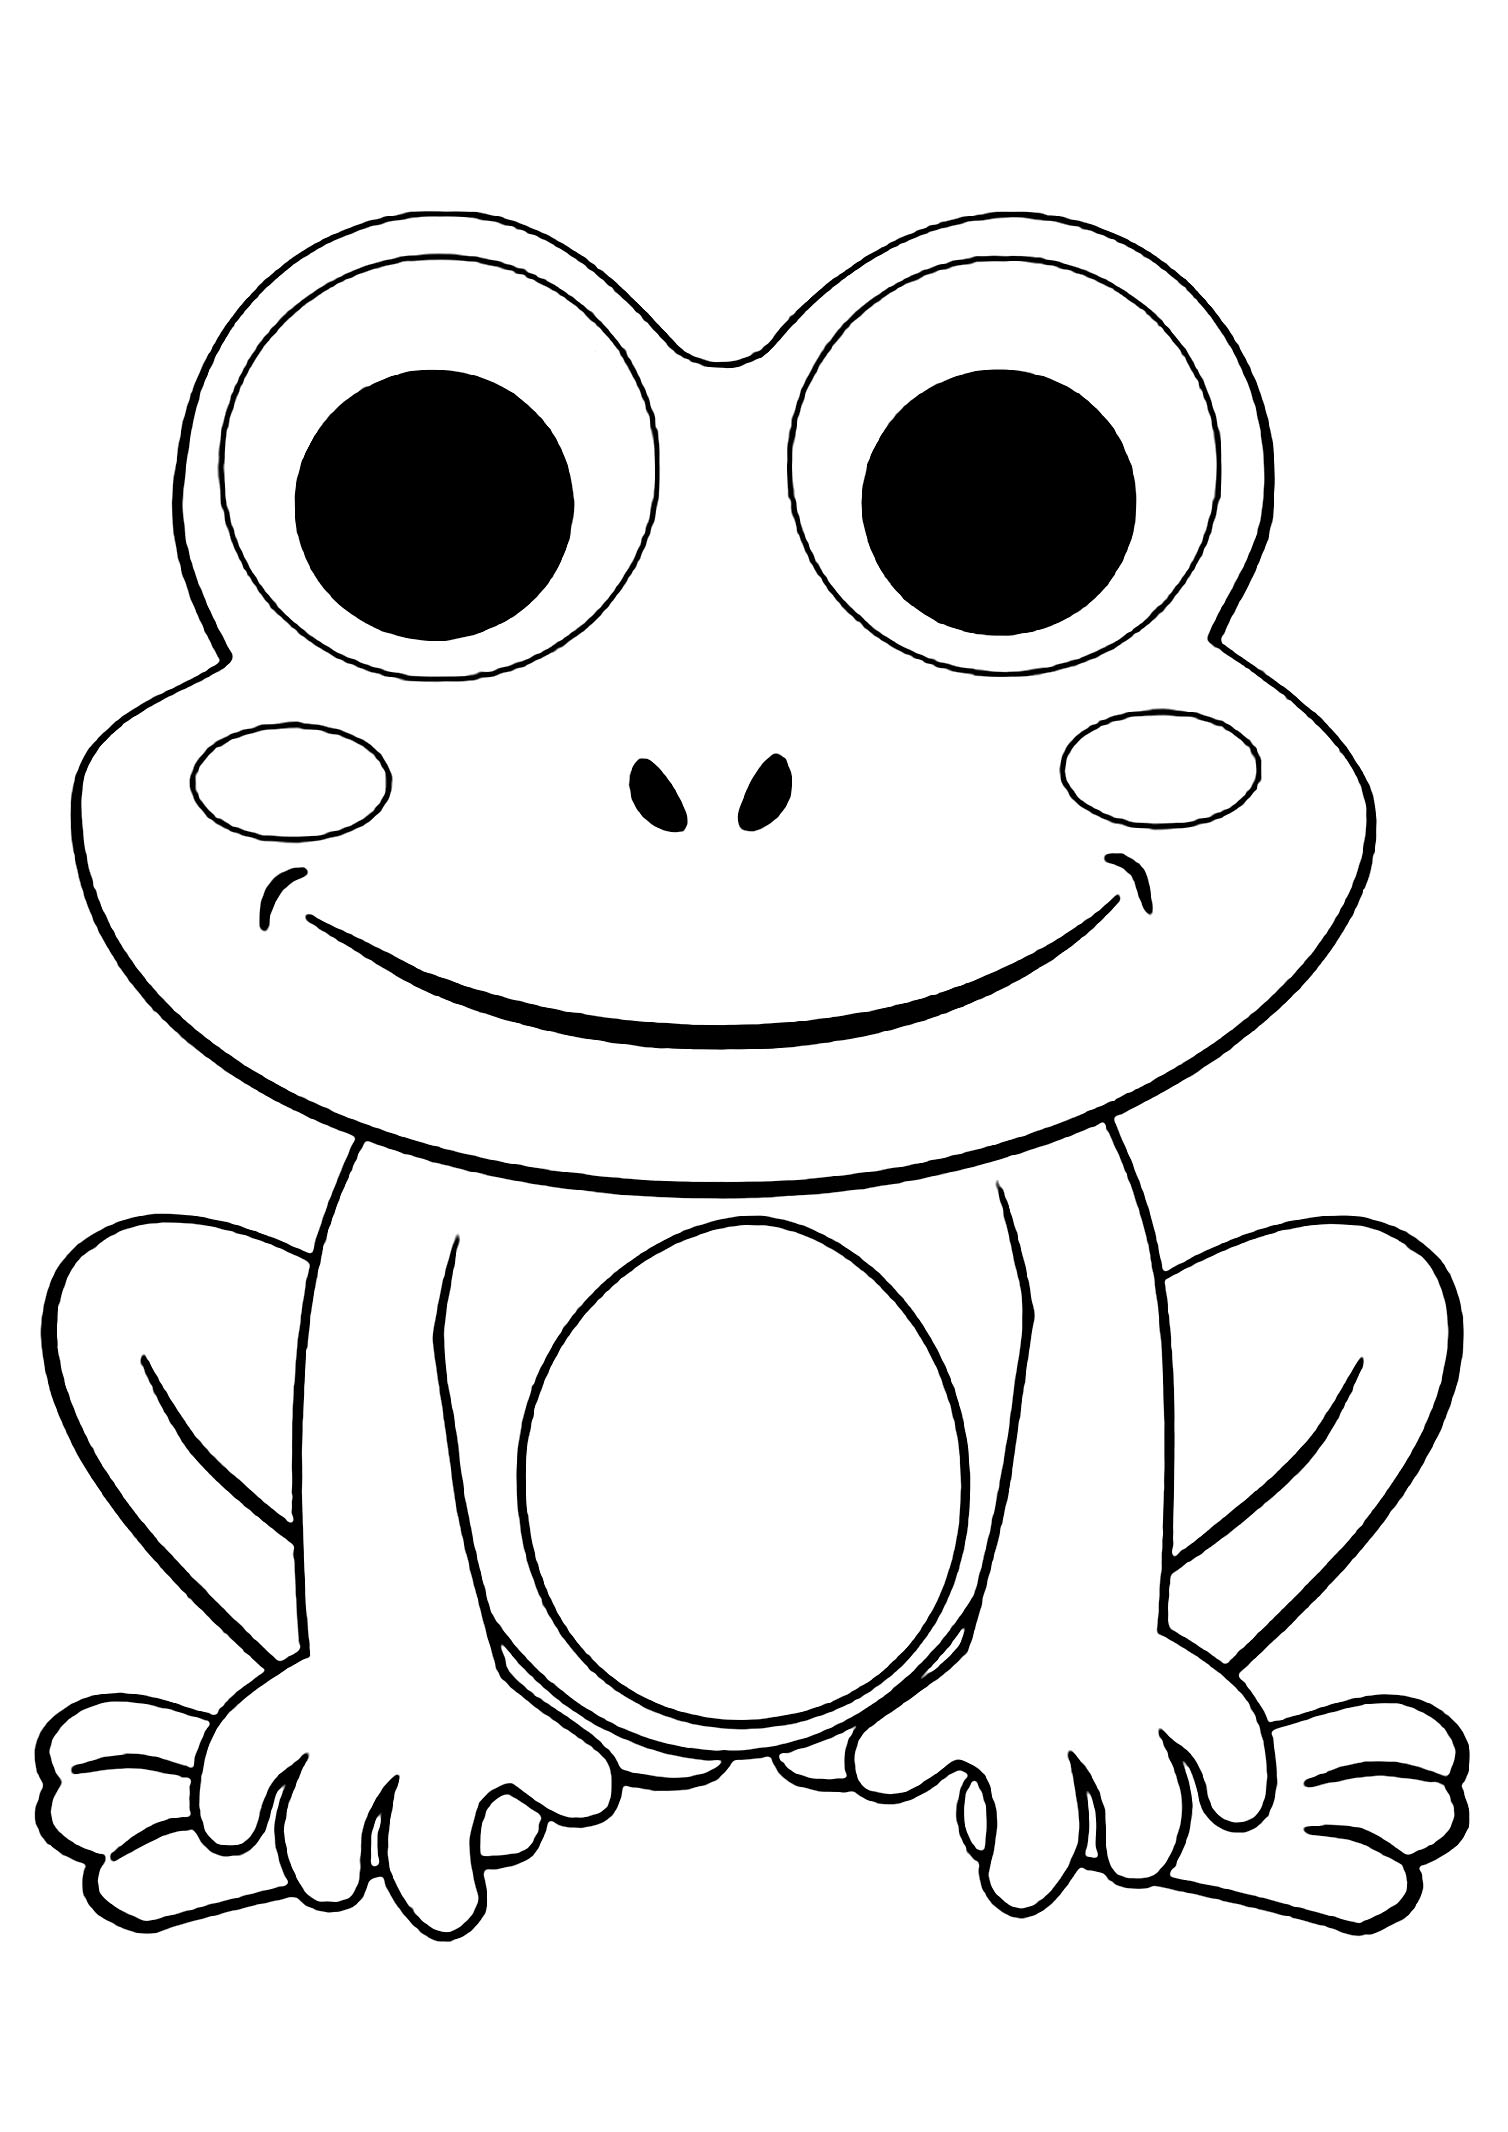 photo relating to Printable Frogs referred to as Frogs toward print for totally free - Frogs Small children Coloring Webpages